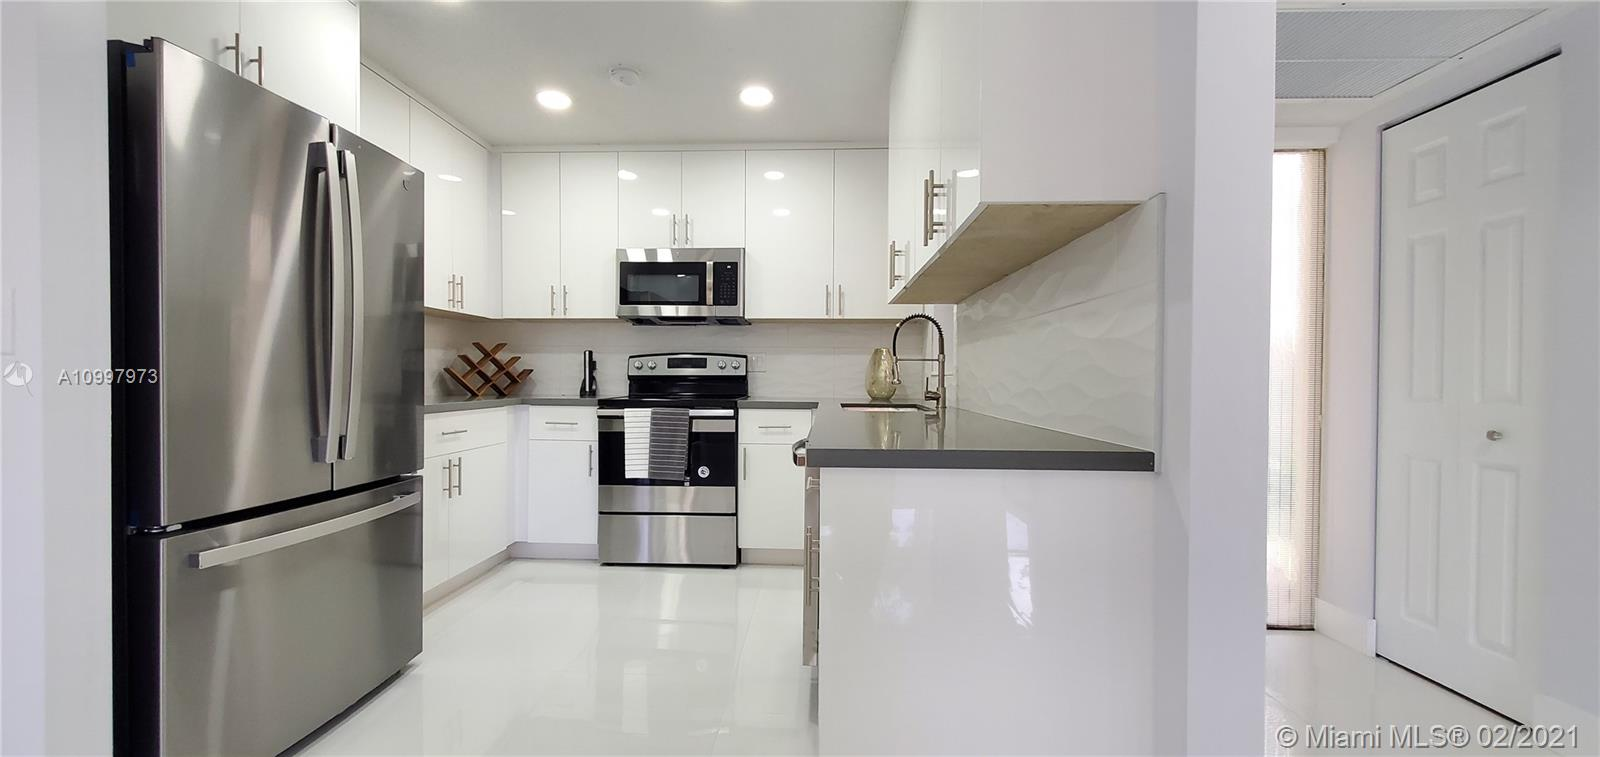 Wow! Nicest unit at the wonderful Baywood Village I. Forget the rest and bring your pickiest client to see this rarely available, completely remodeled, 1st floor corner unit with over 1,100 sqft of beauty and attention to detail. New kitchen with custom made cabinetry, Quartz counter-tops and all new SS appliances. New bathrooms with modern shower panel and glass shower door. New High-End 24x24 porcelain tiles with new baseboards. All new LED lighting. New full size washer/dryer. New water heater. New Electrical Panel and less than 2 yr old A/C! Accordion shutters all around. Pets OK up to 25lbs! No rentals 1st 2 yrs. Association has reserves and requires 5% down.Please read all remarks & attachments before calling or submitting your offer.NO NEED TO CALL FOR STATUS IF ACTIVE. SHOW & SELL!